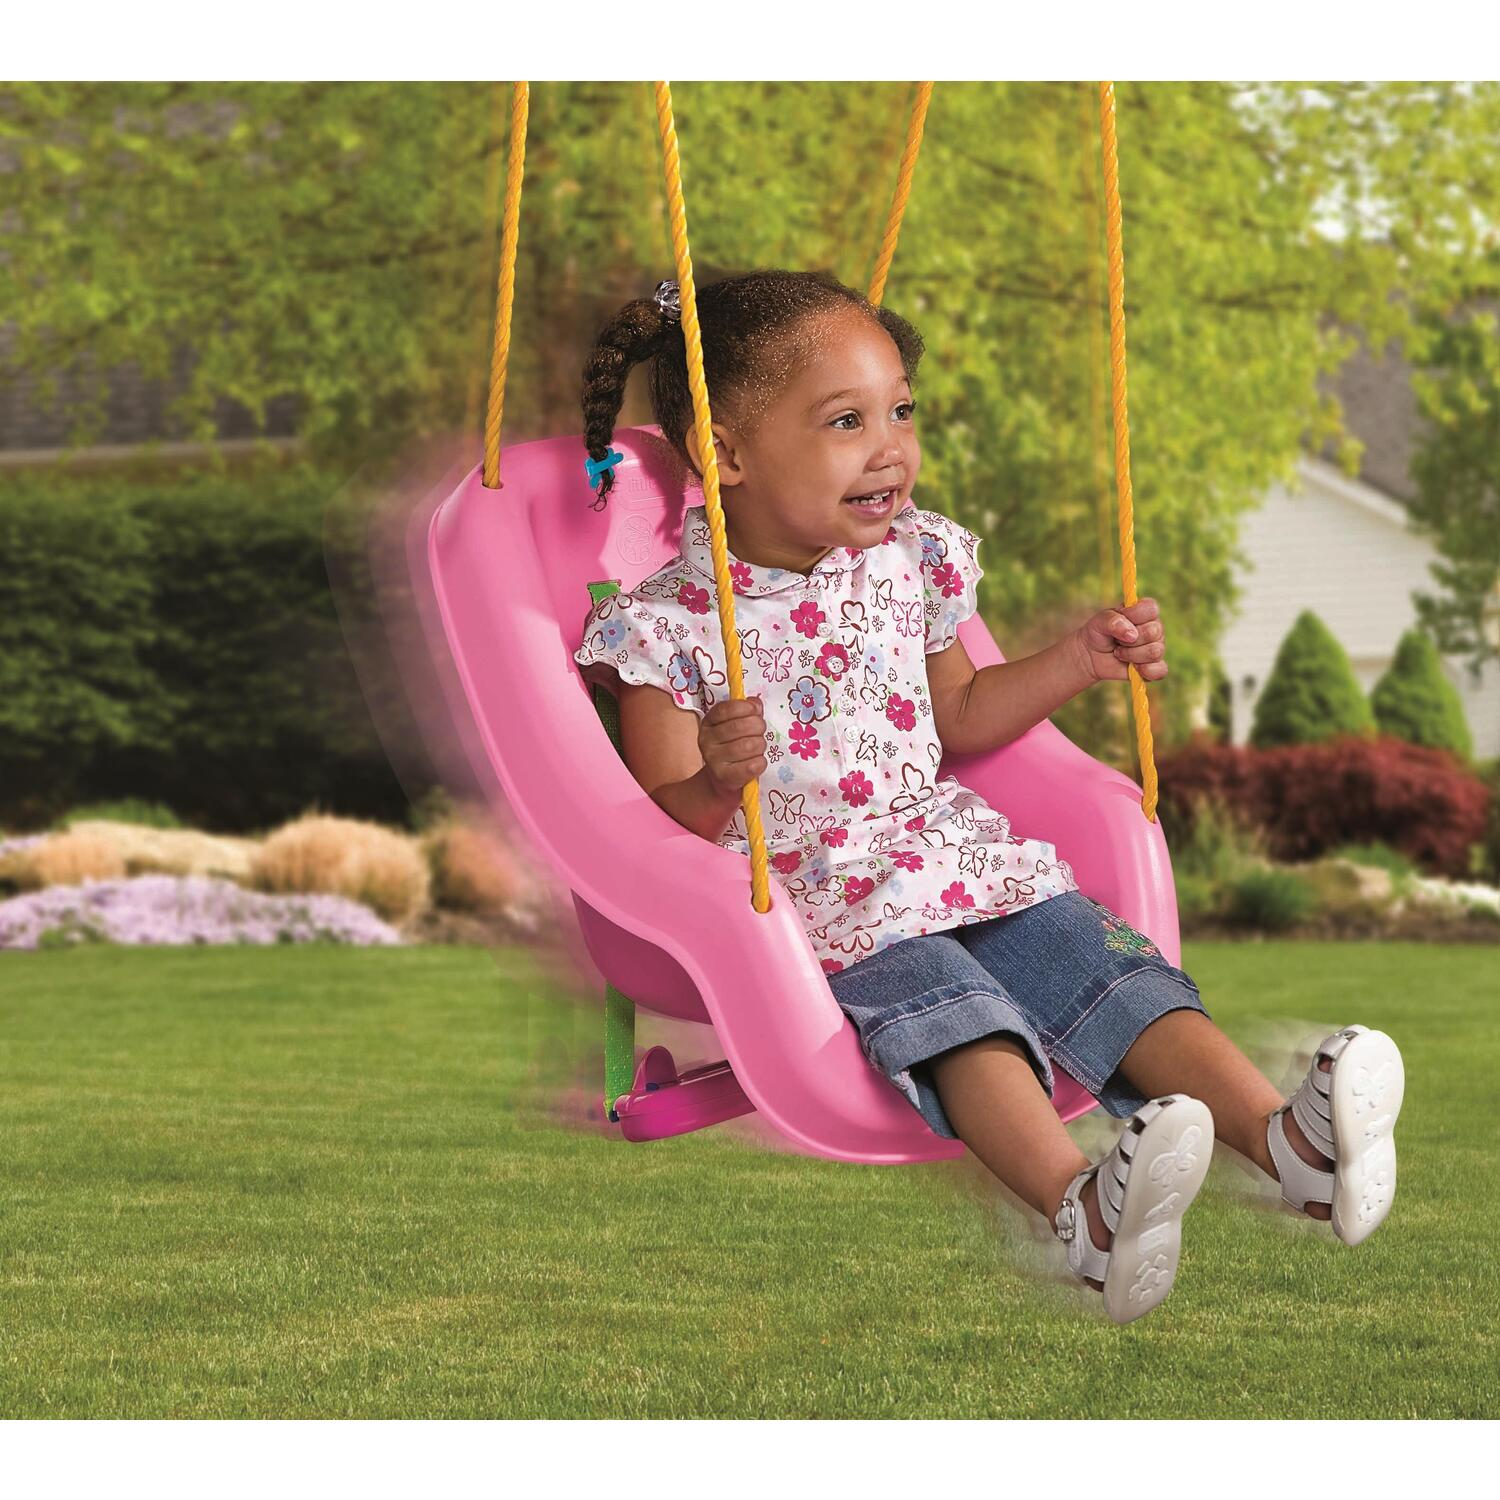 baby chair swing pink high end rocking chairs furniture home goods appliances athletic gear fitness